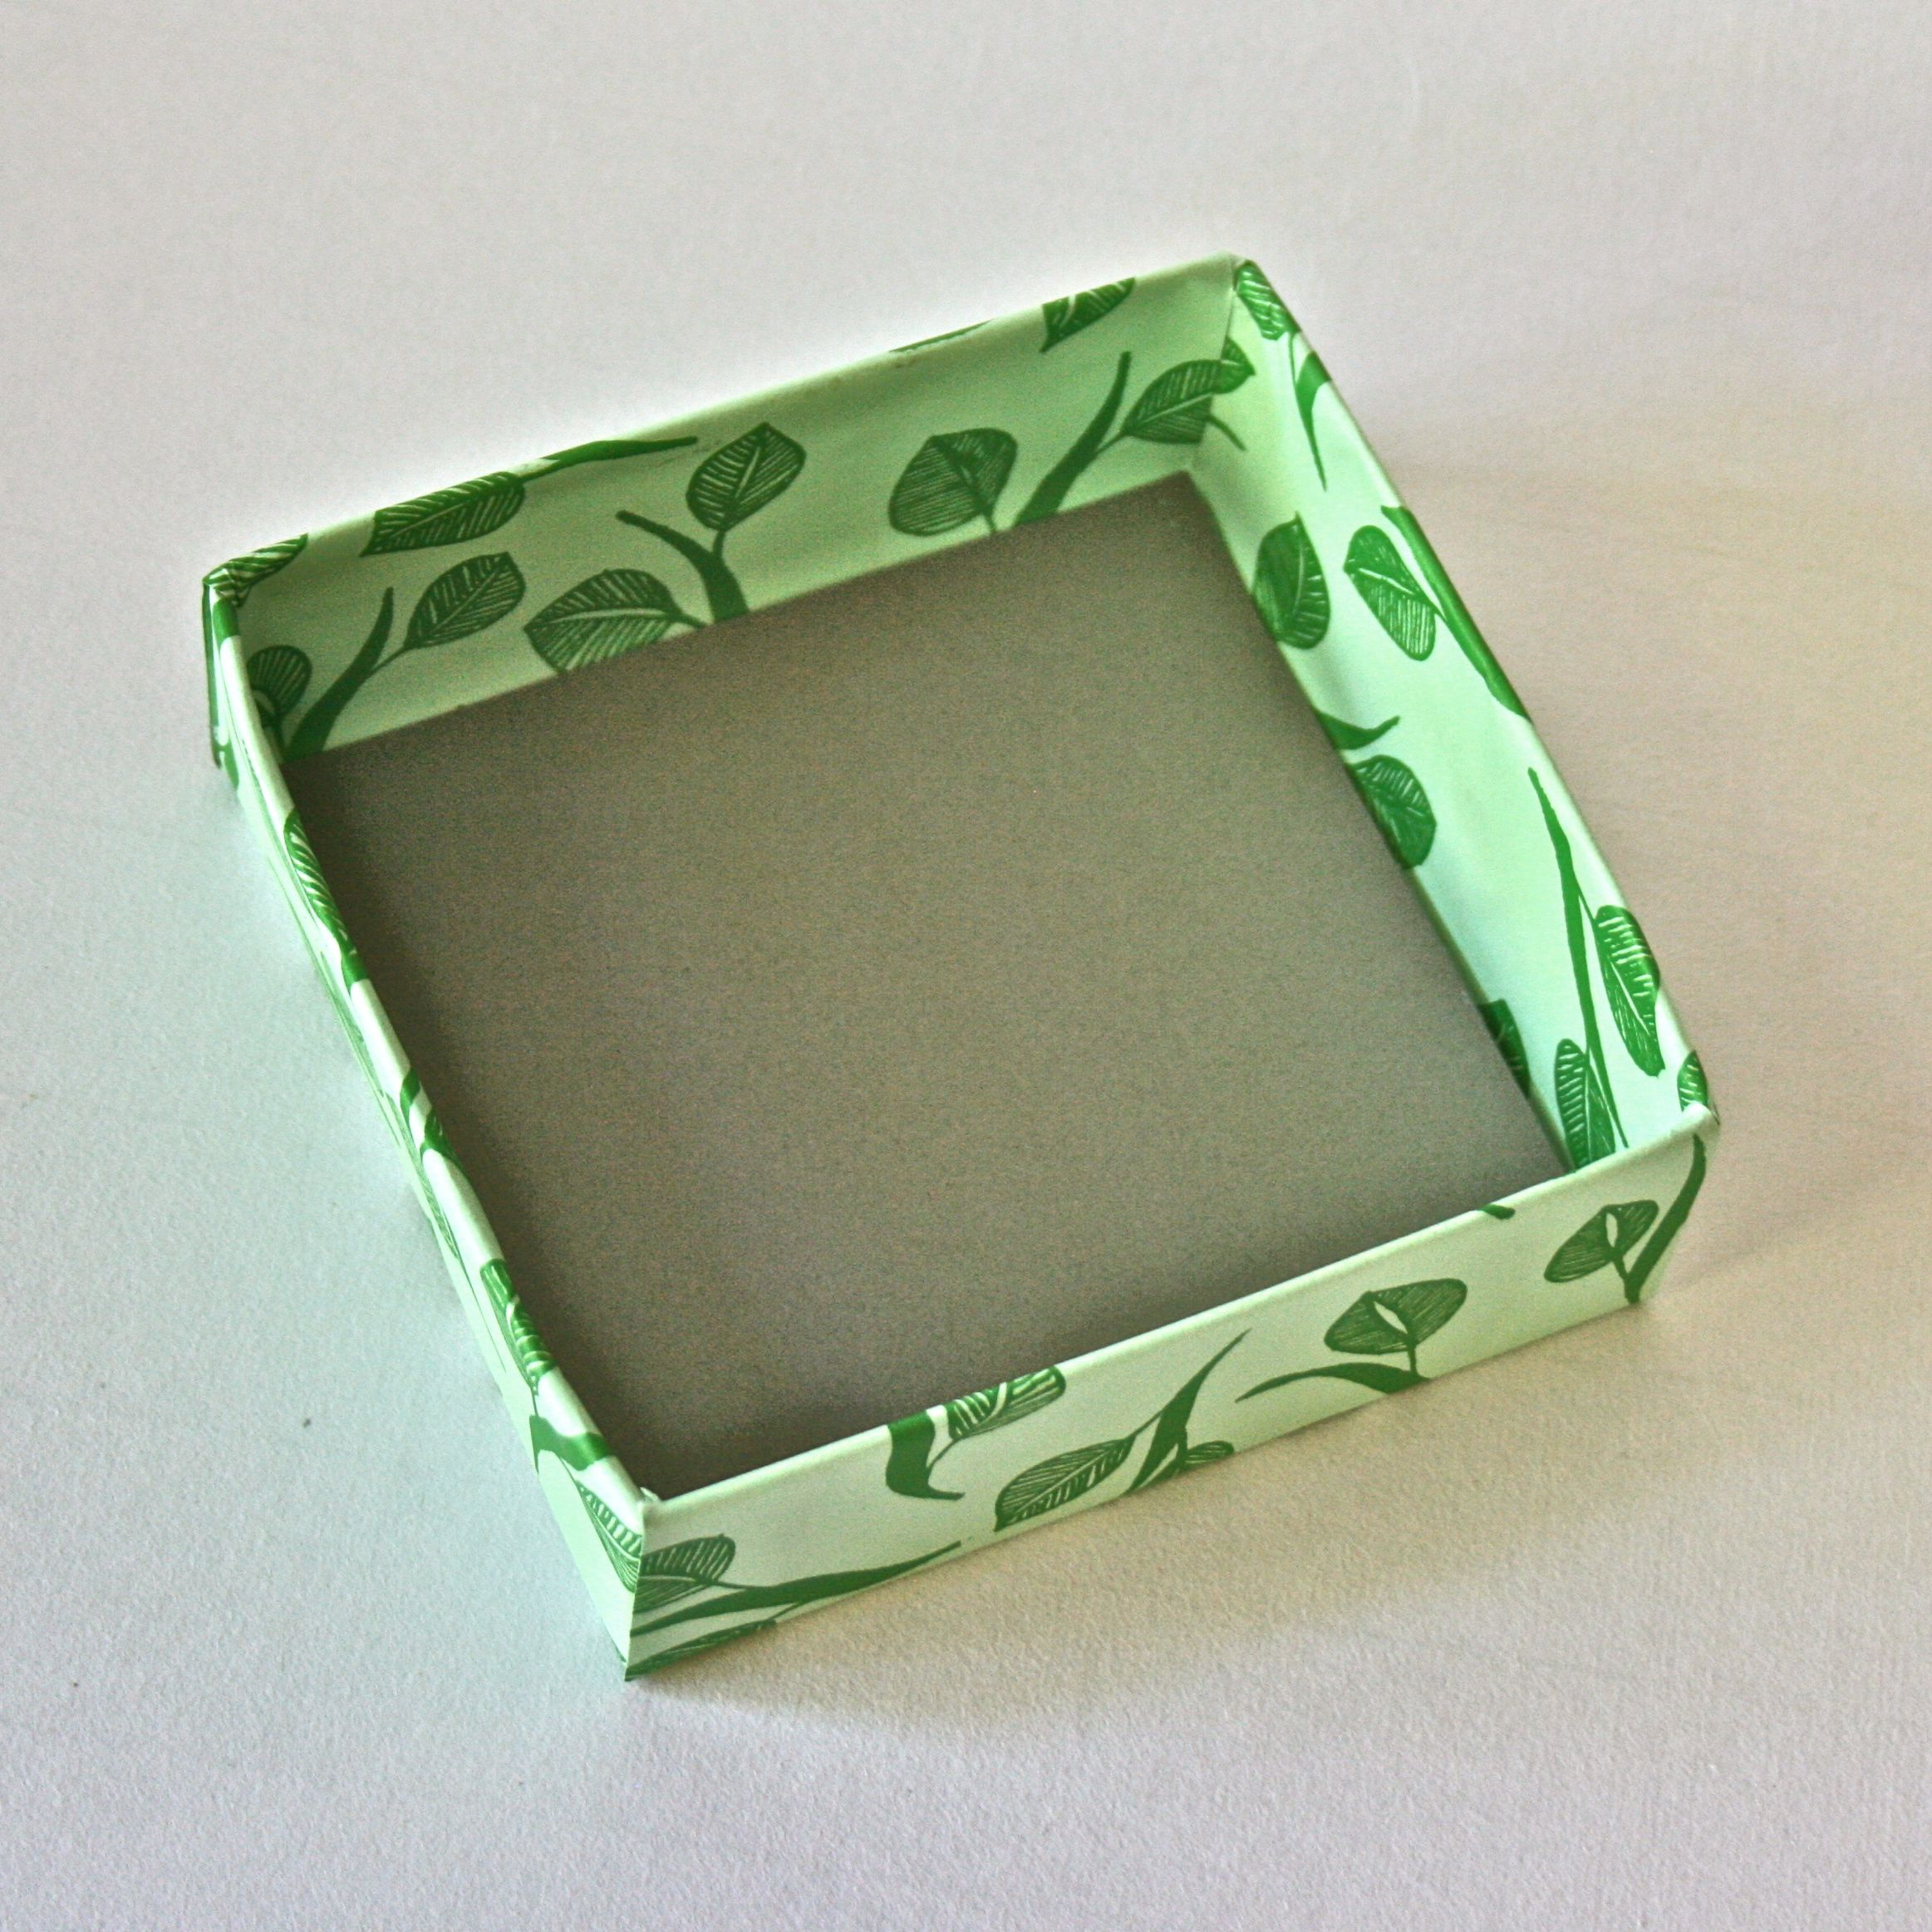 Transform any shape or size of an existing box into a decorative and unique gift box